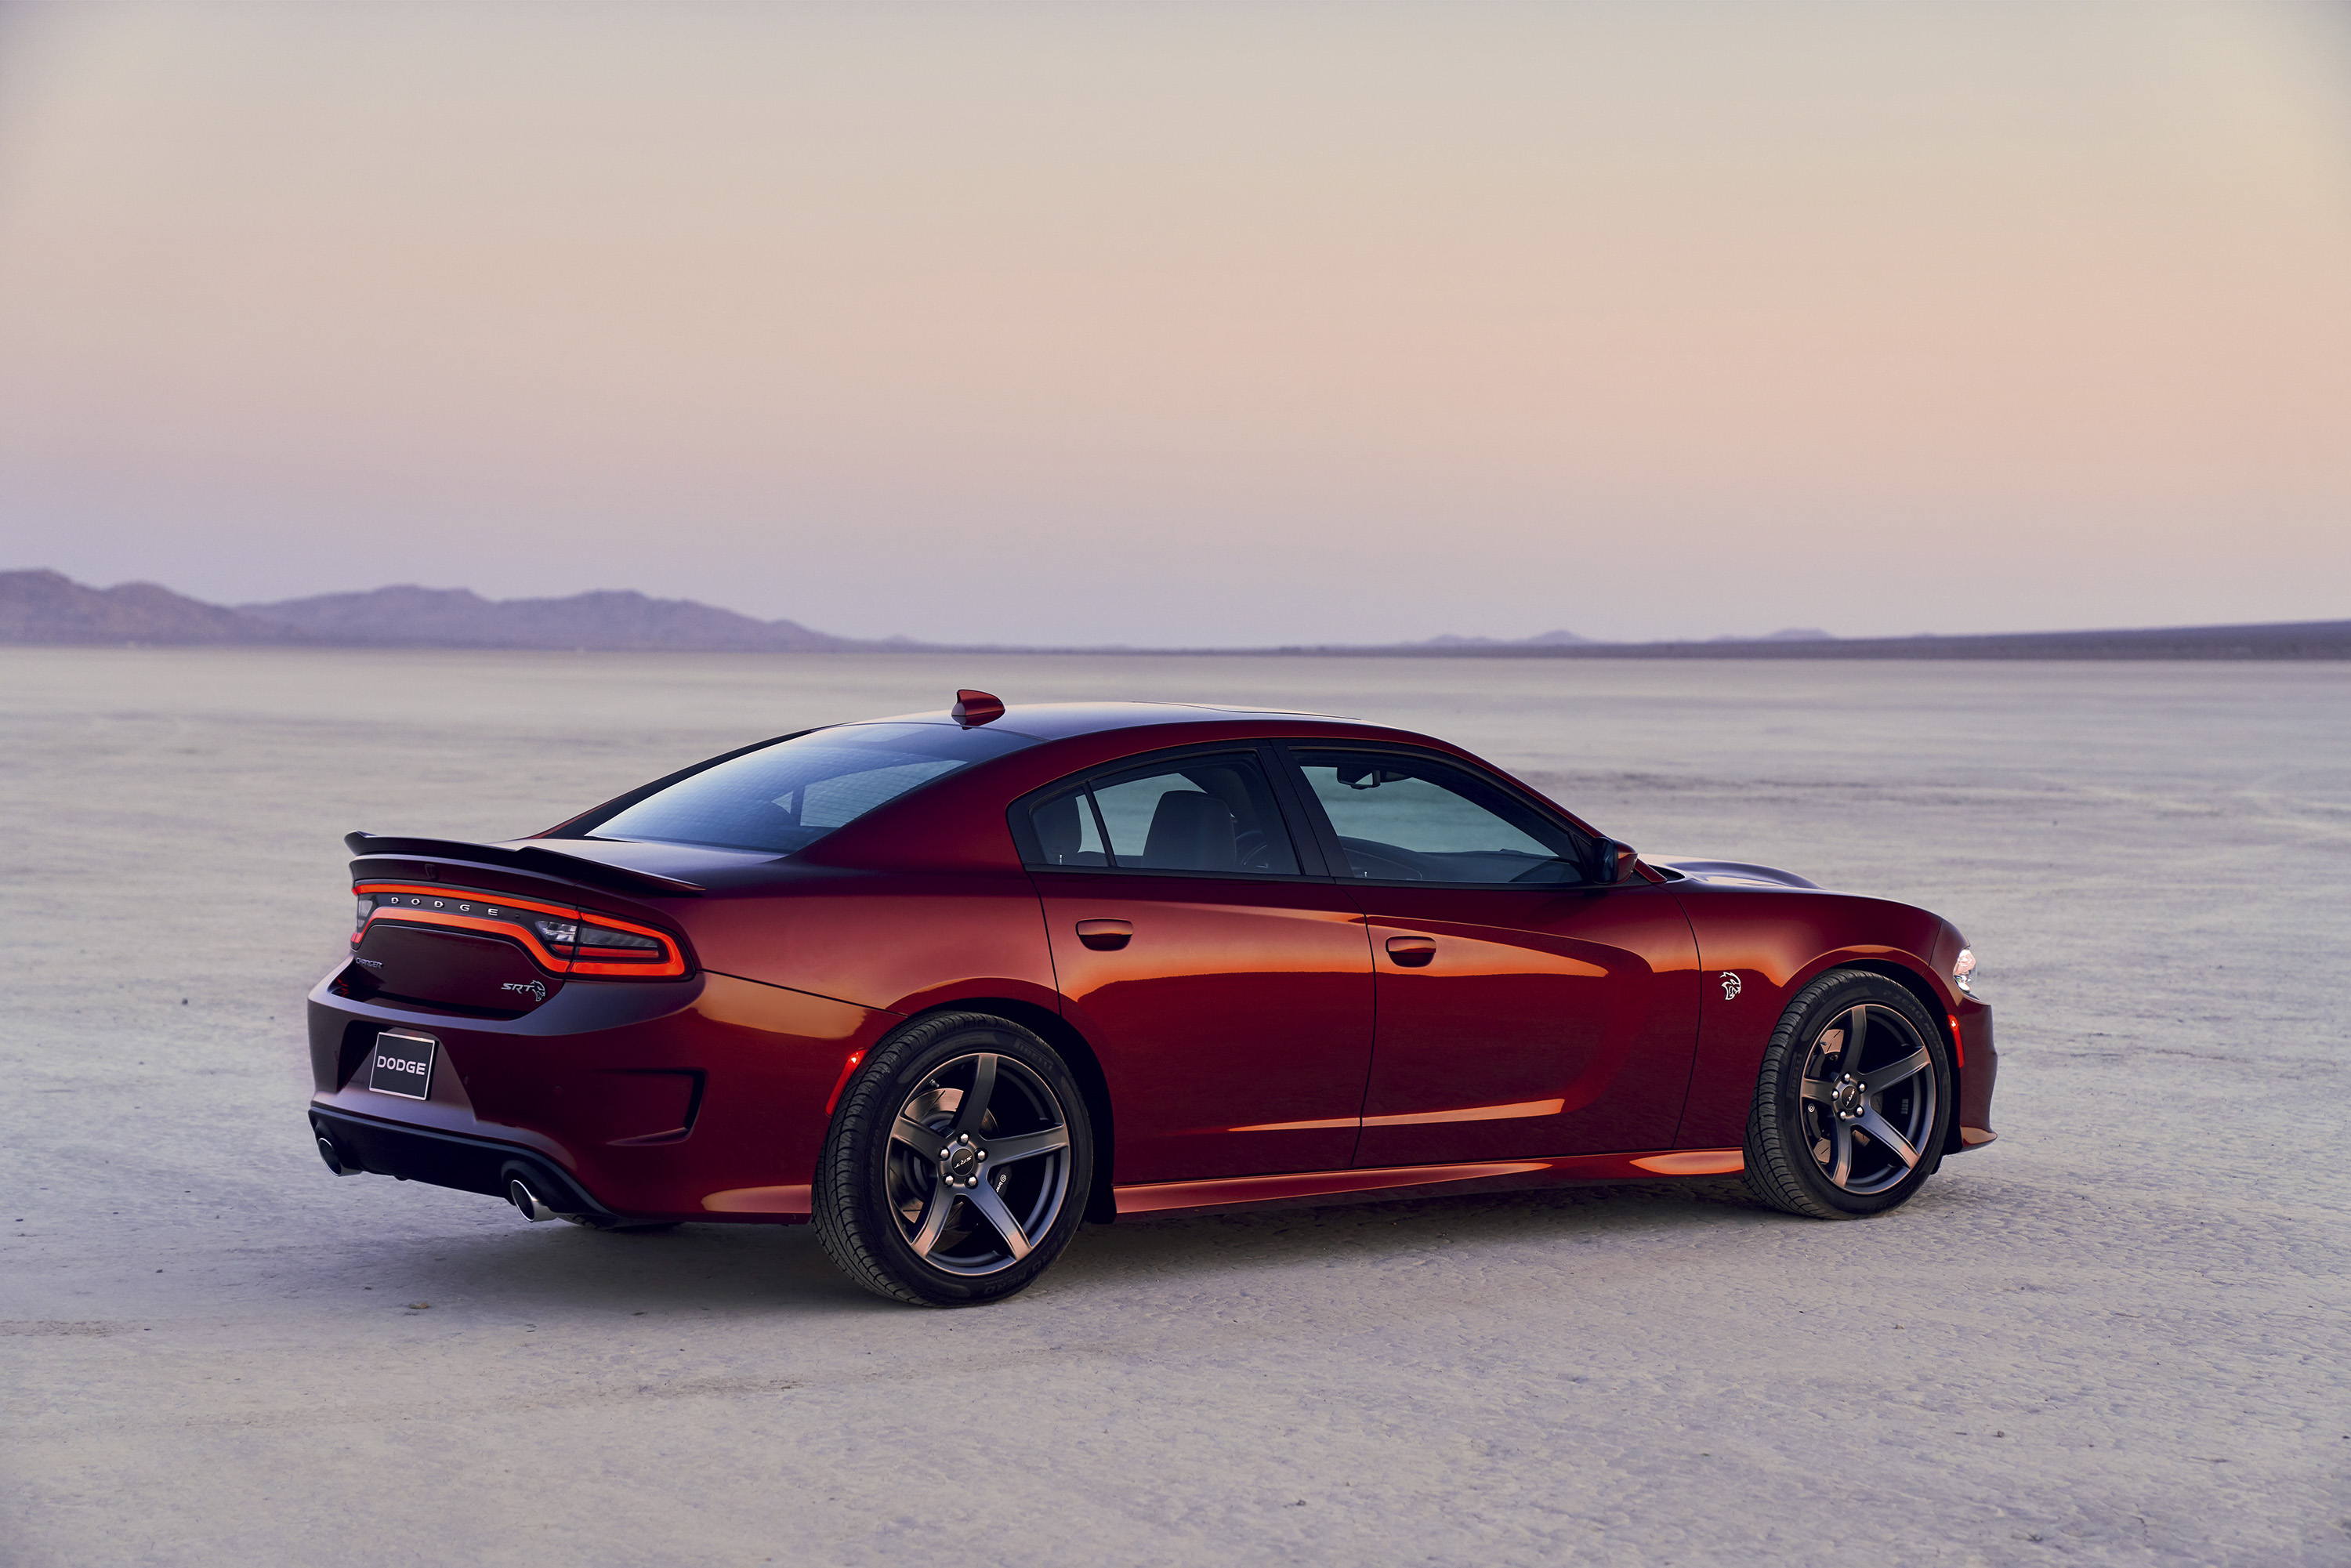 It's Not A New Generation, But The Dodge Charger Gets Some